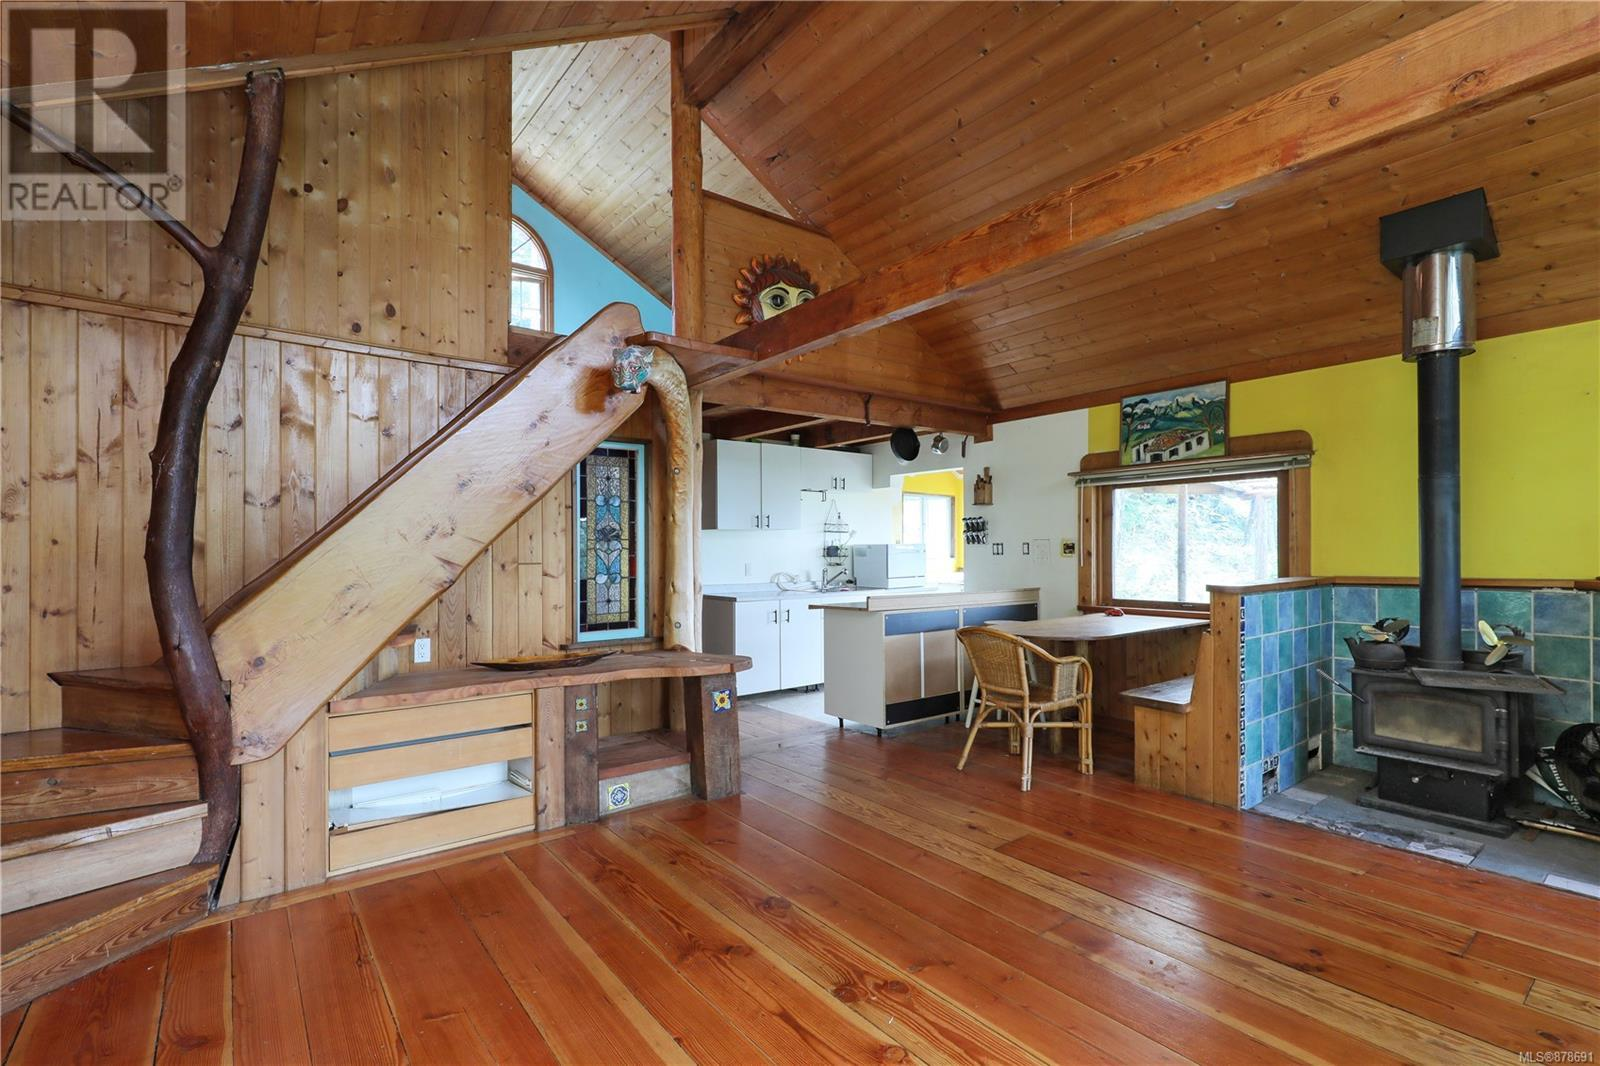 MLS® #878691 - Cortes Island House For sale Image #38